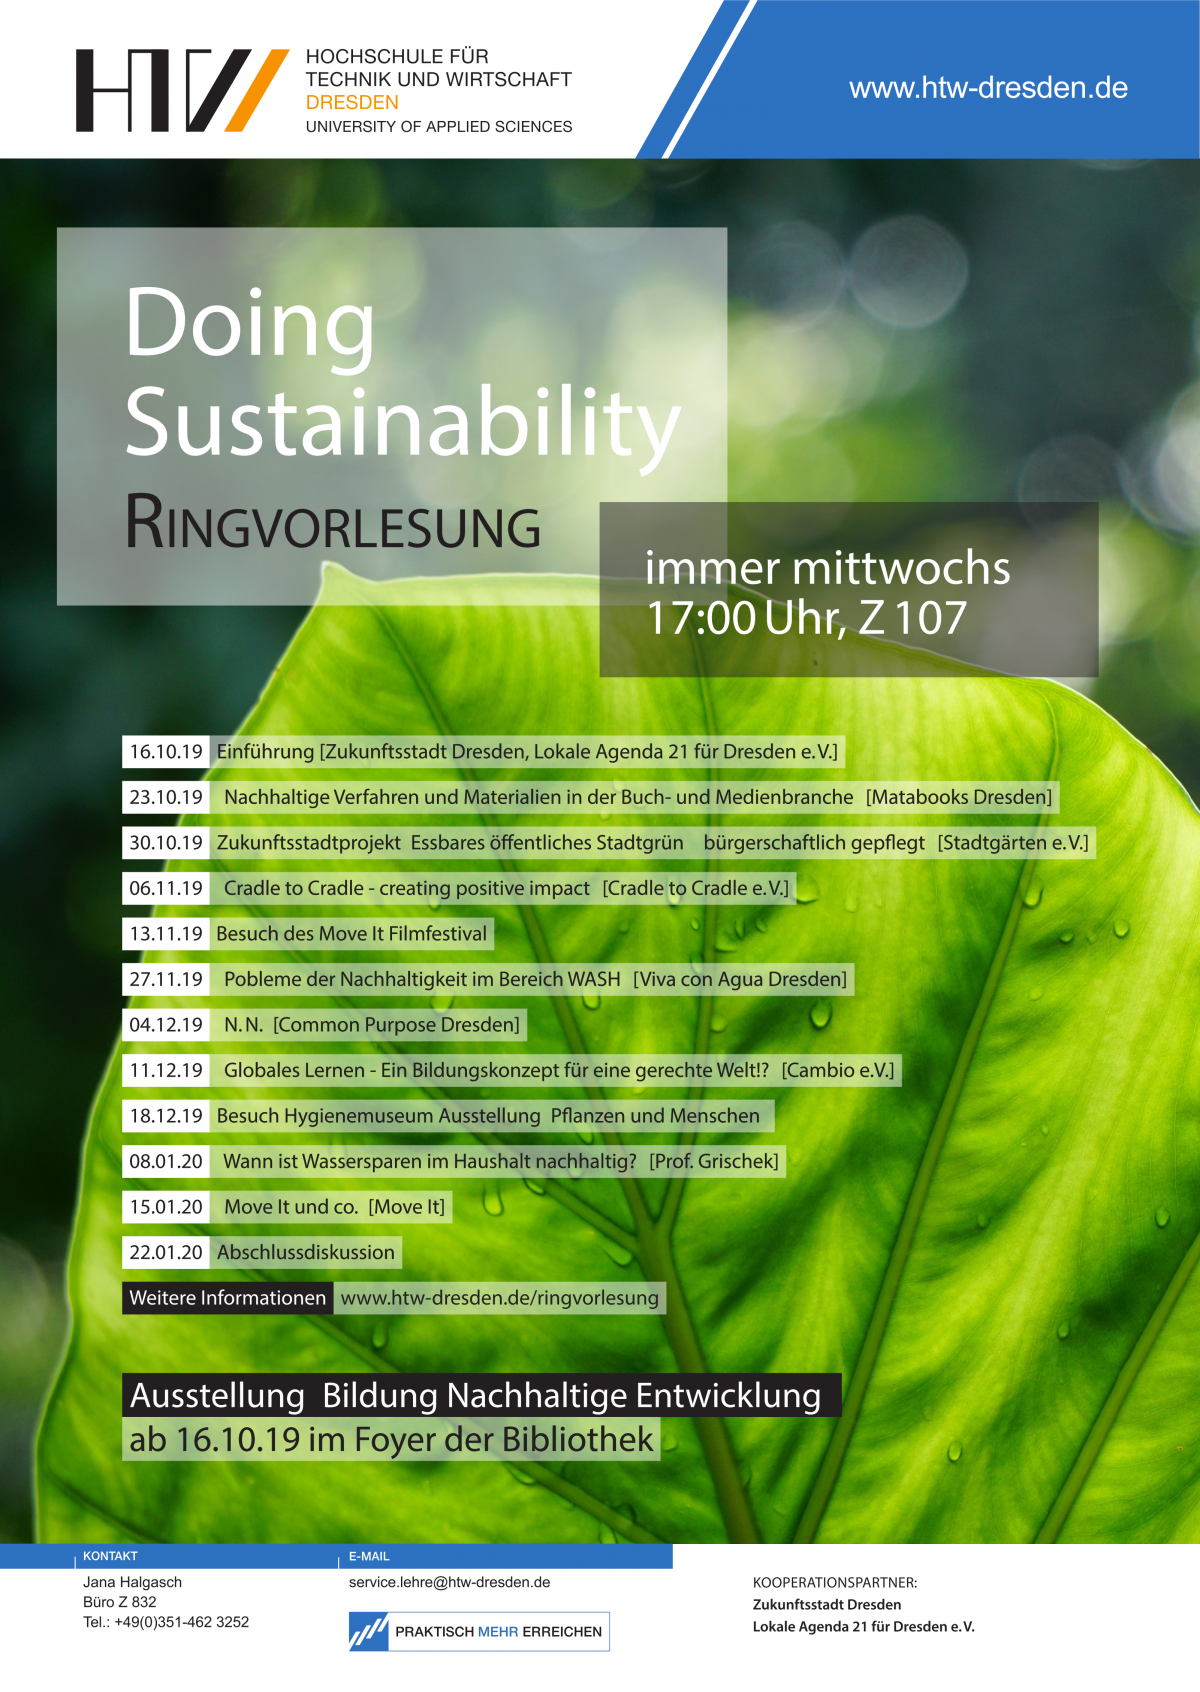 "Ringvorlesung ""Doing Sustainability"" an der HTW Dresden"